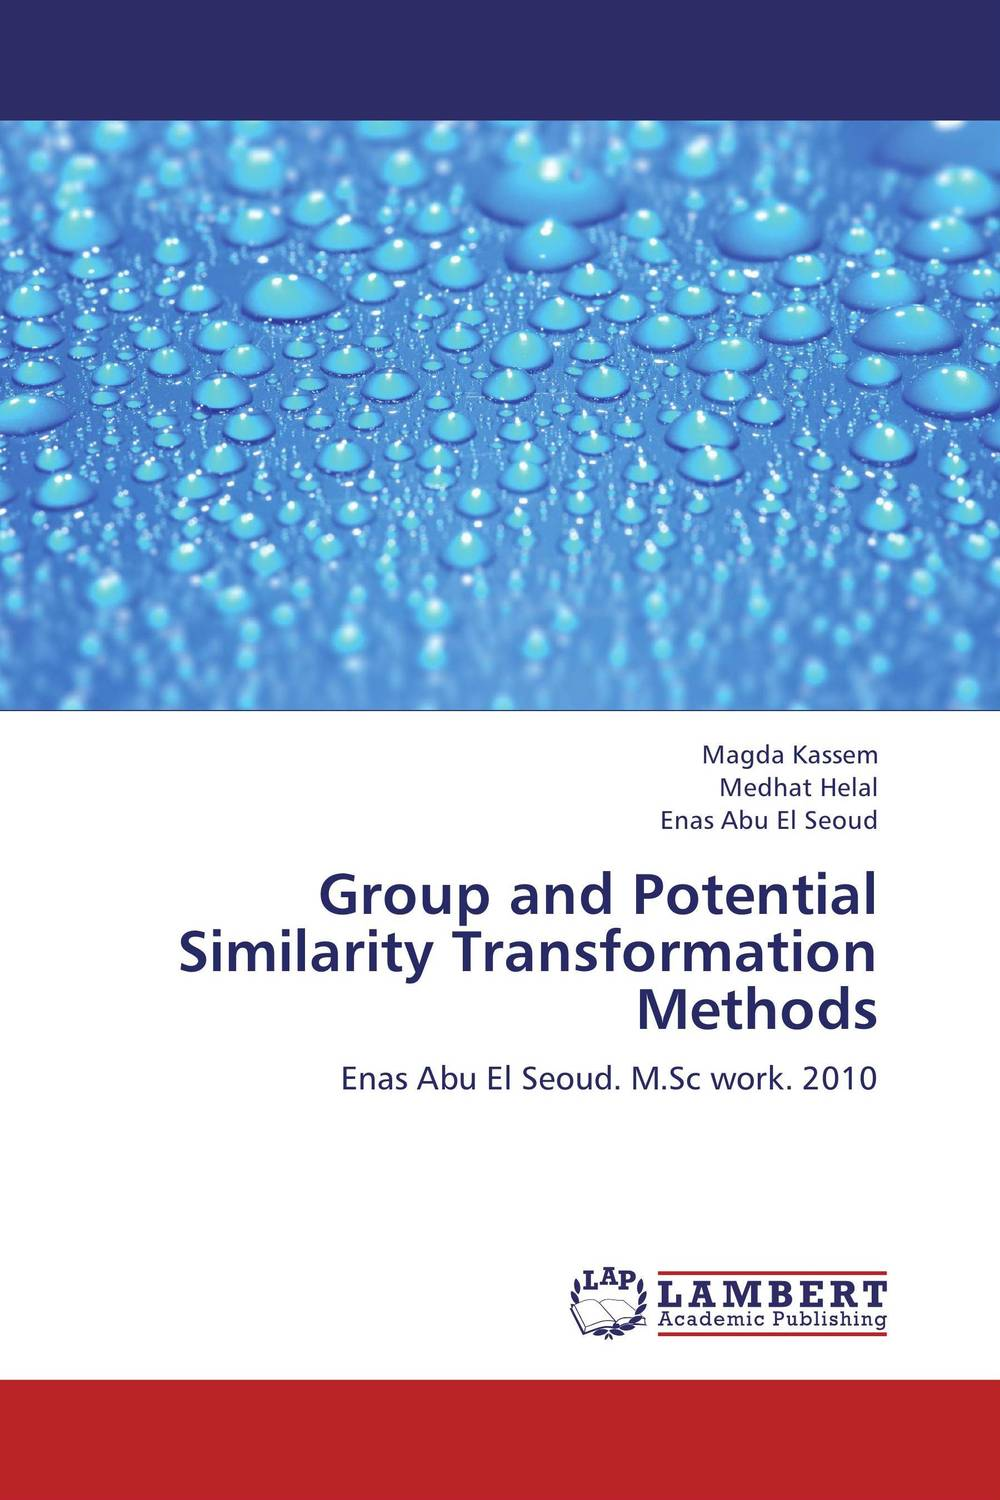 Group and Potential Similarity Transformation Methods collocation methods for volterra integral and related functional differential equations